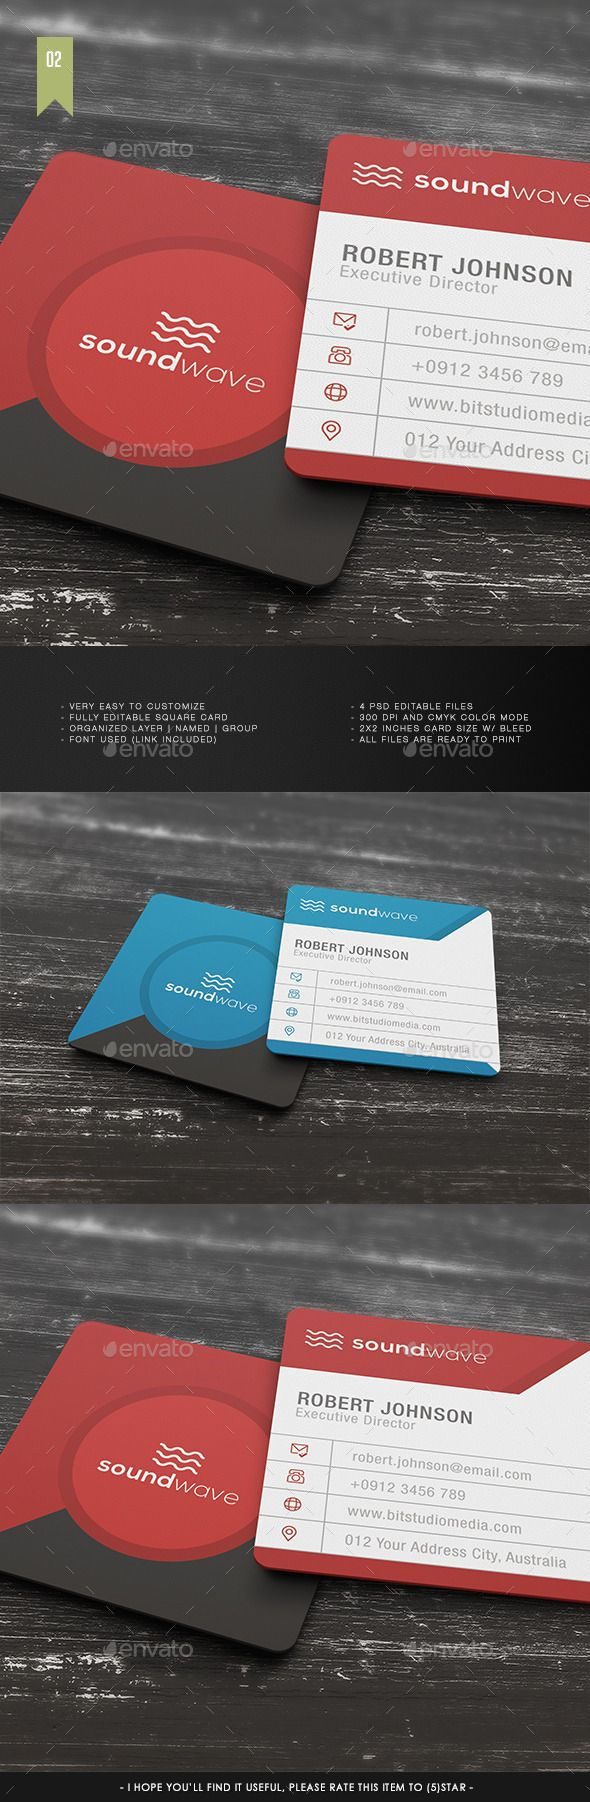 Teestrimsquare Business Card Template V 002 Item Specification Very Easy To Custo Square Business Card Vertical Business Card Template Printable Business Cards